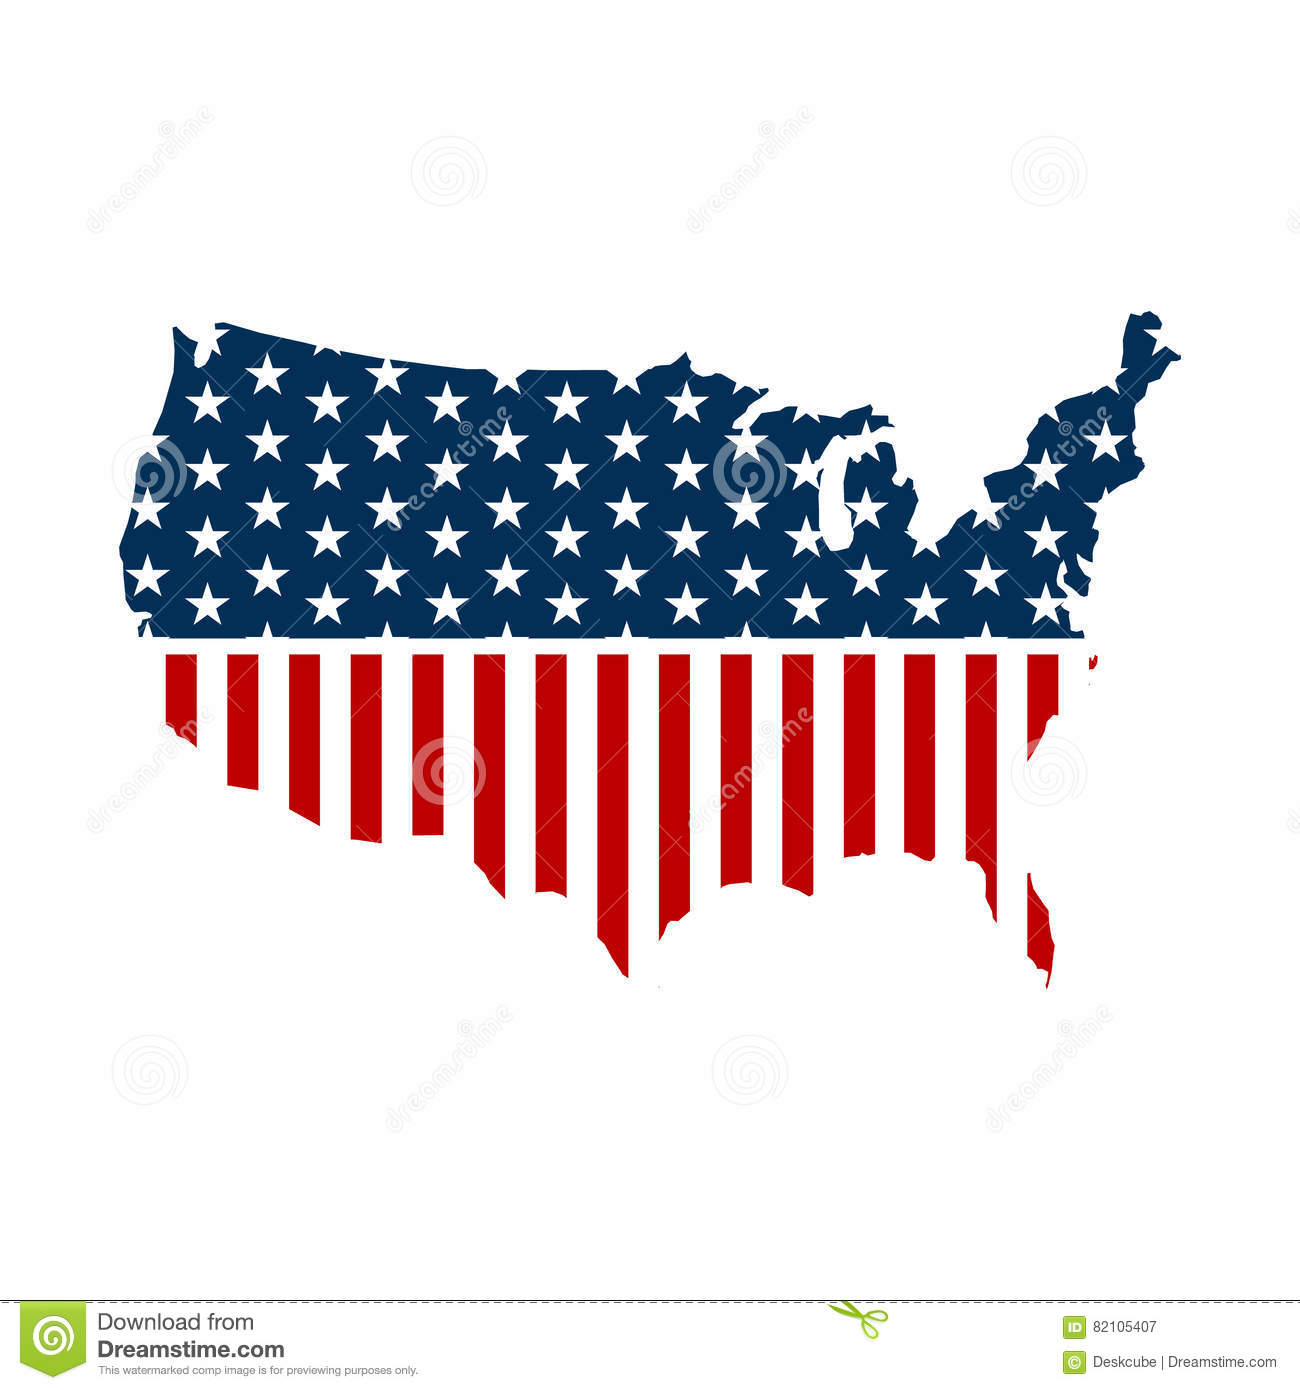 United States Map With Stars And Stripes Stock Vector - Illustration on nh us map, nc us map, state us map, name us map, time us map, ne us map, iq us map, or us map, lv us map, split us map, ks us map, se us map, pacific northwest region us map, wi us map, wv us map, va us map, ny us map, az us map, ma us map,